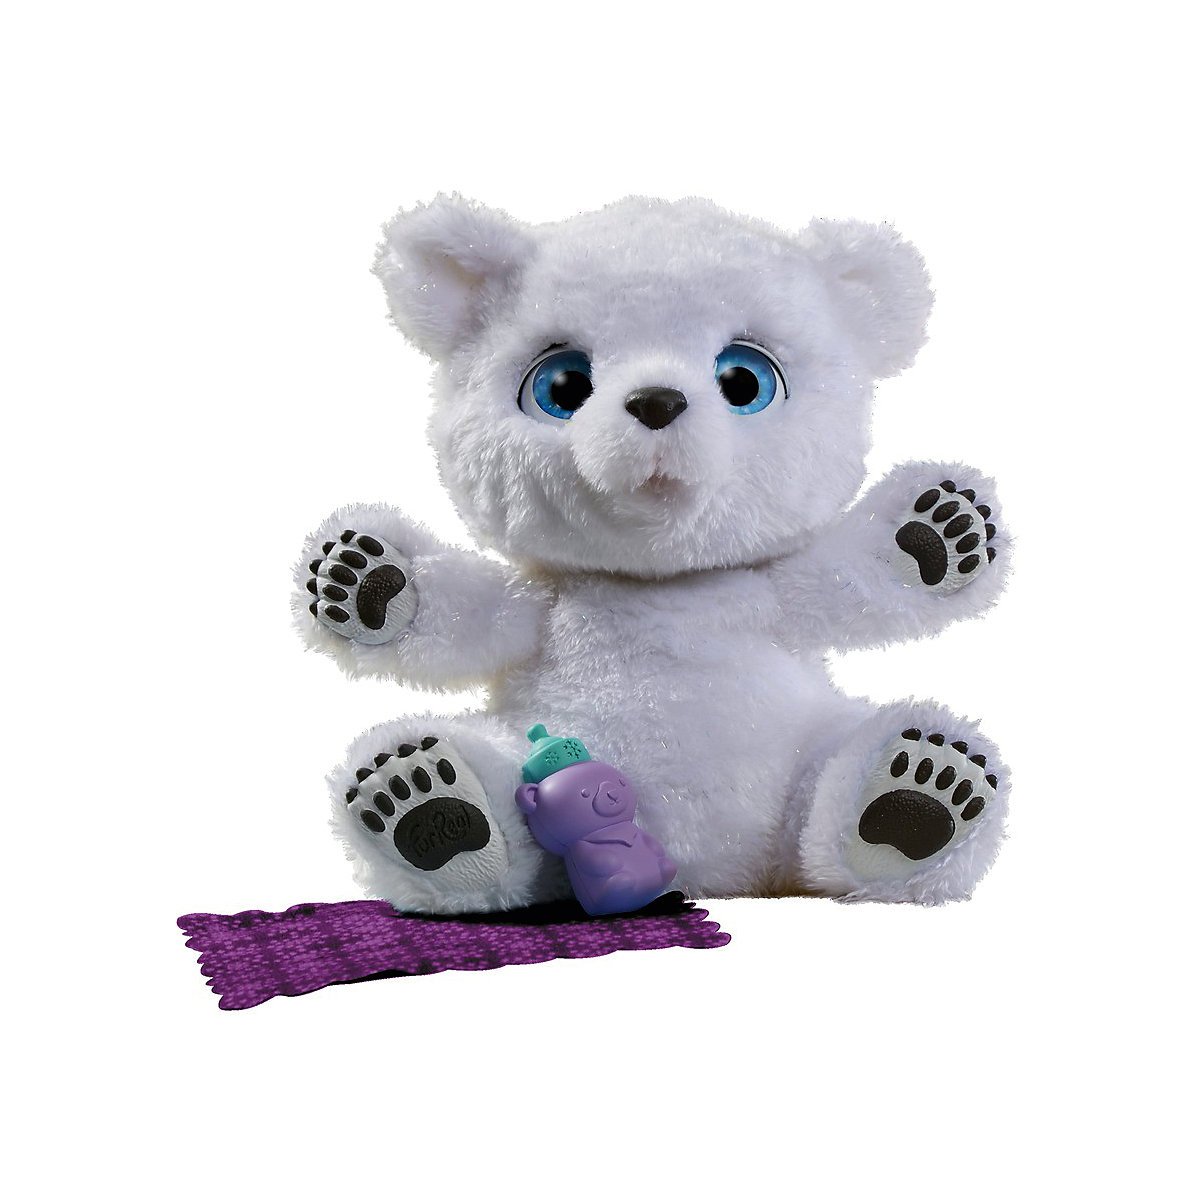 Electronic Plush Toys FURREAL FRIENDS 7137764 Snow Maiden Talking Doll Sound Recording Dog Kids MTpromo